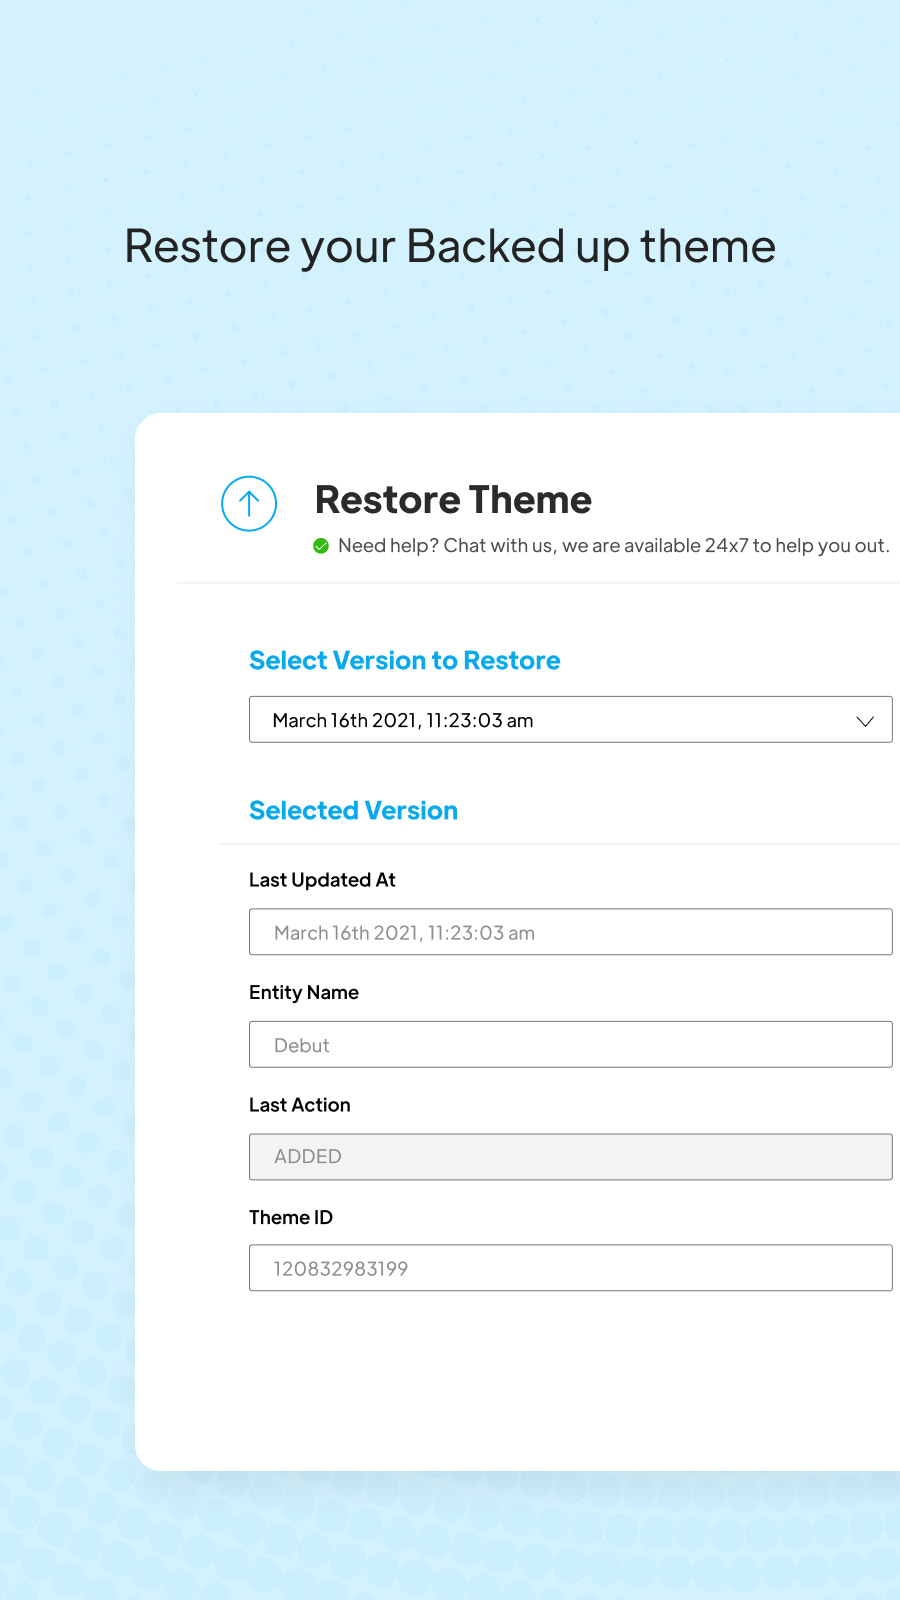 Restore Backed up theme